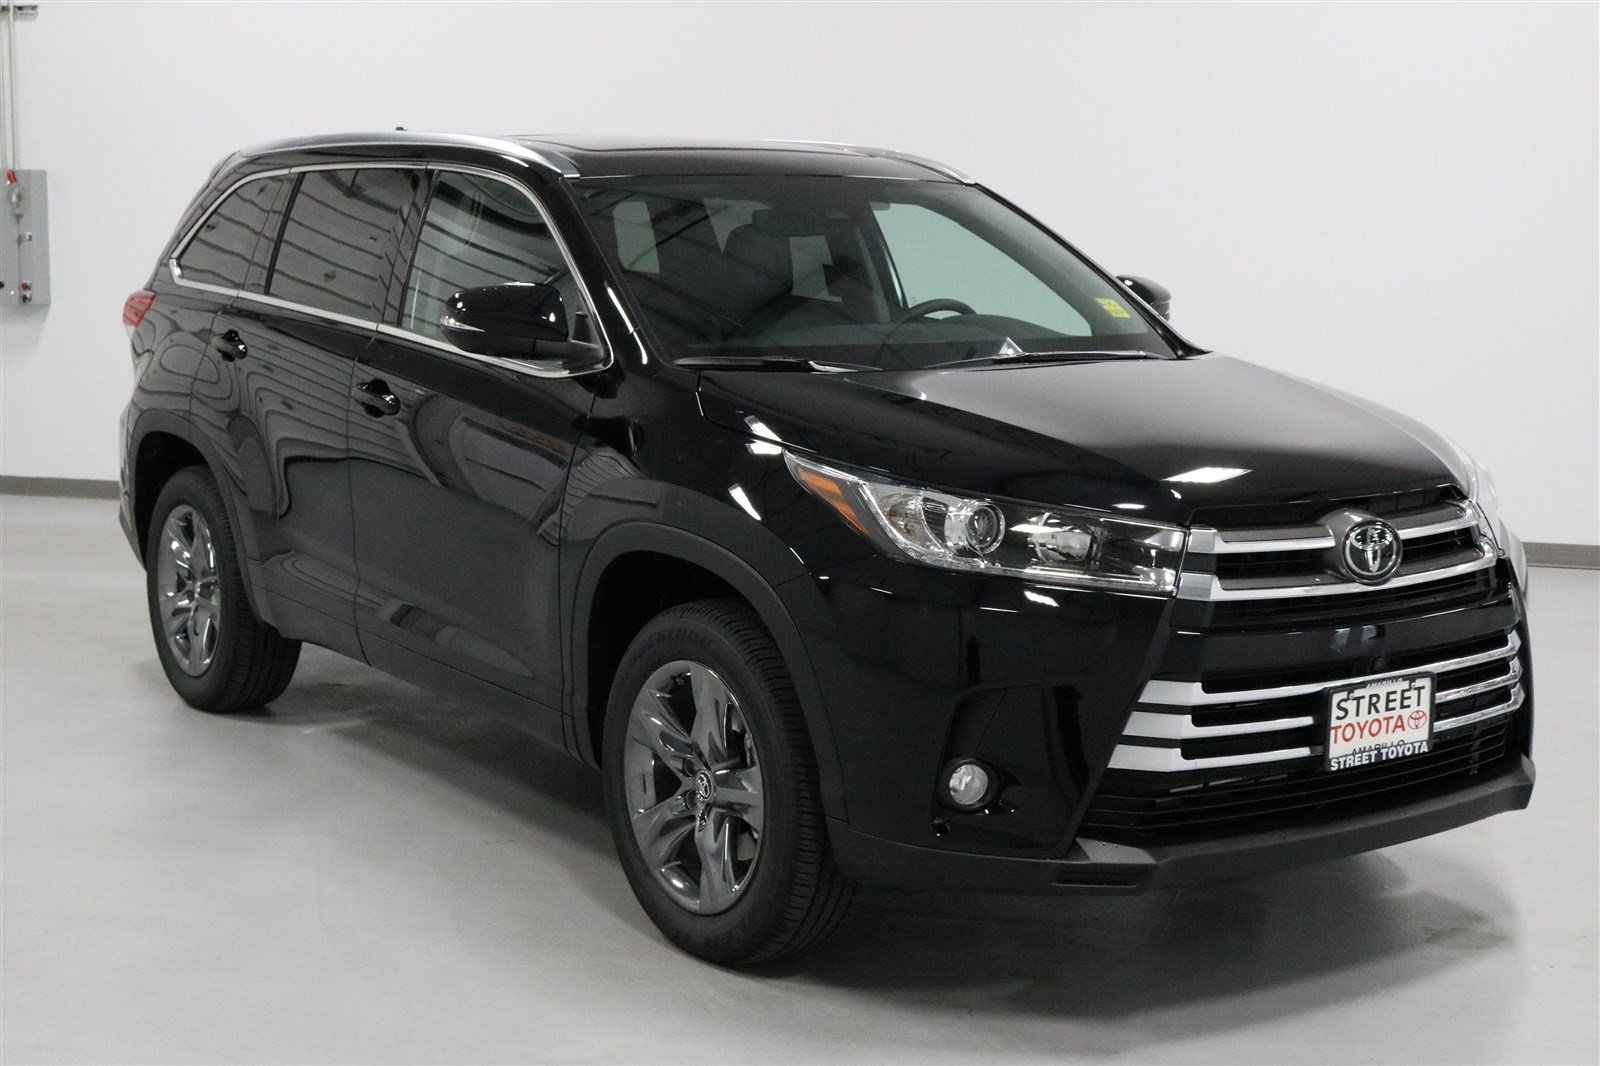 toyota highlander limited toyota highlander limitedp with toyota highlander limited trendy. Black Bedroom Furniture Sets. Home Design Ideas